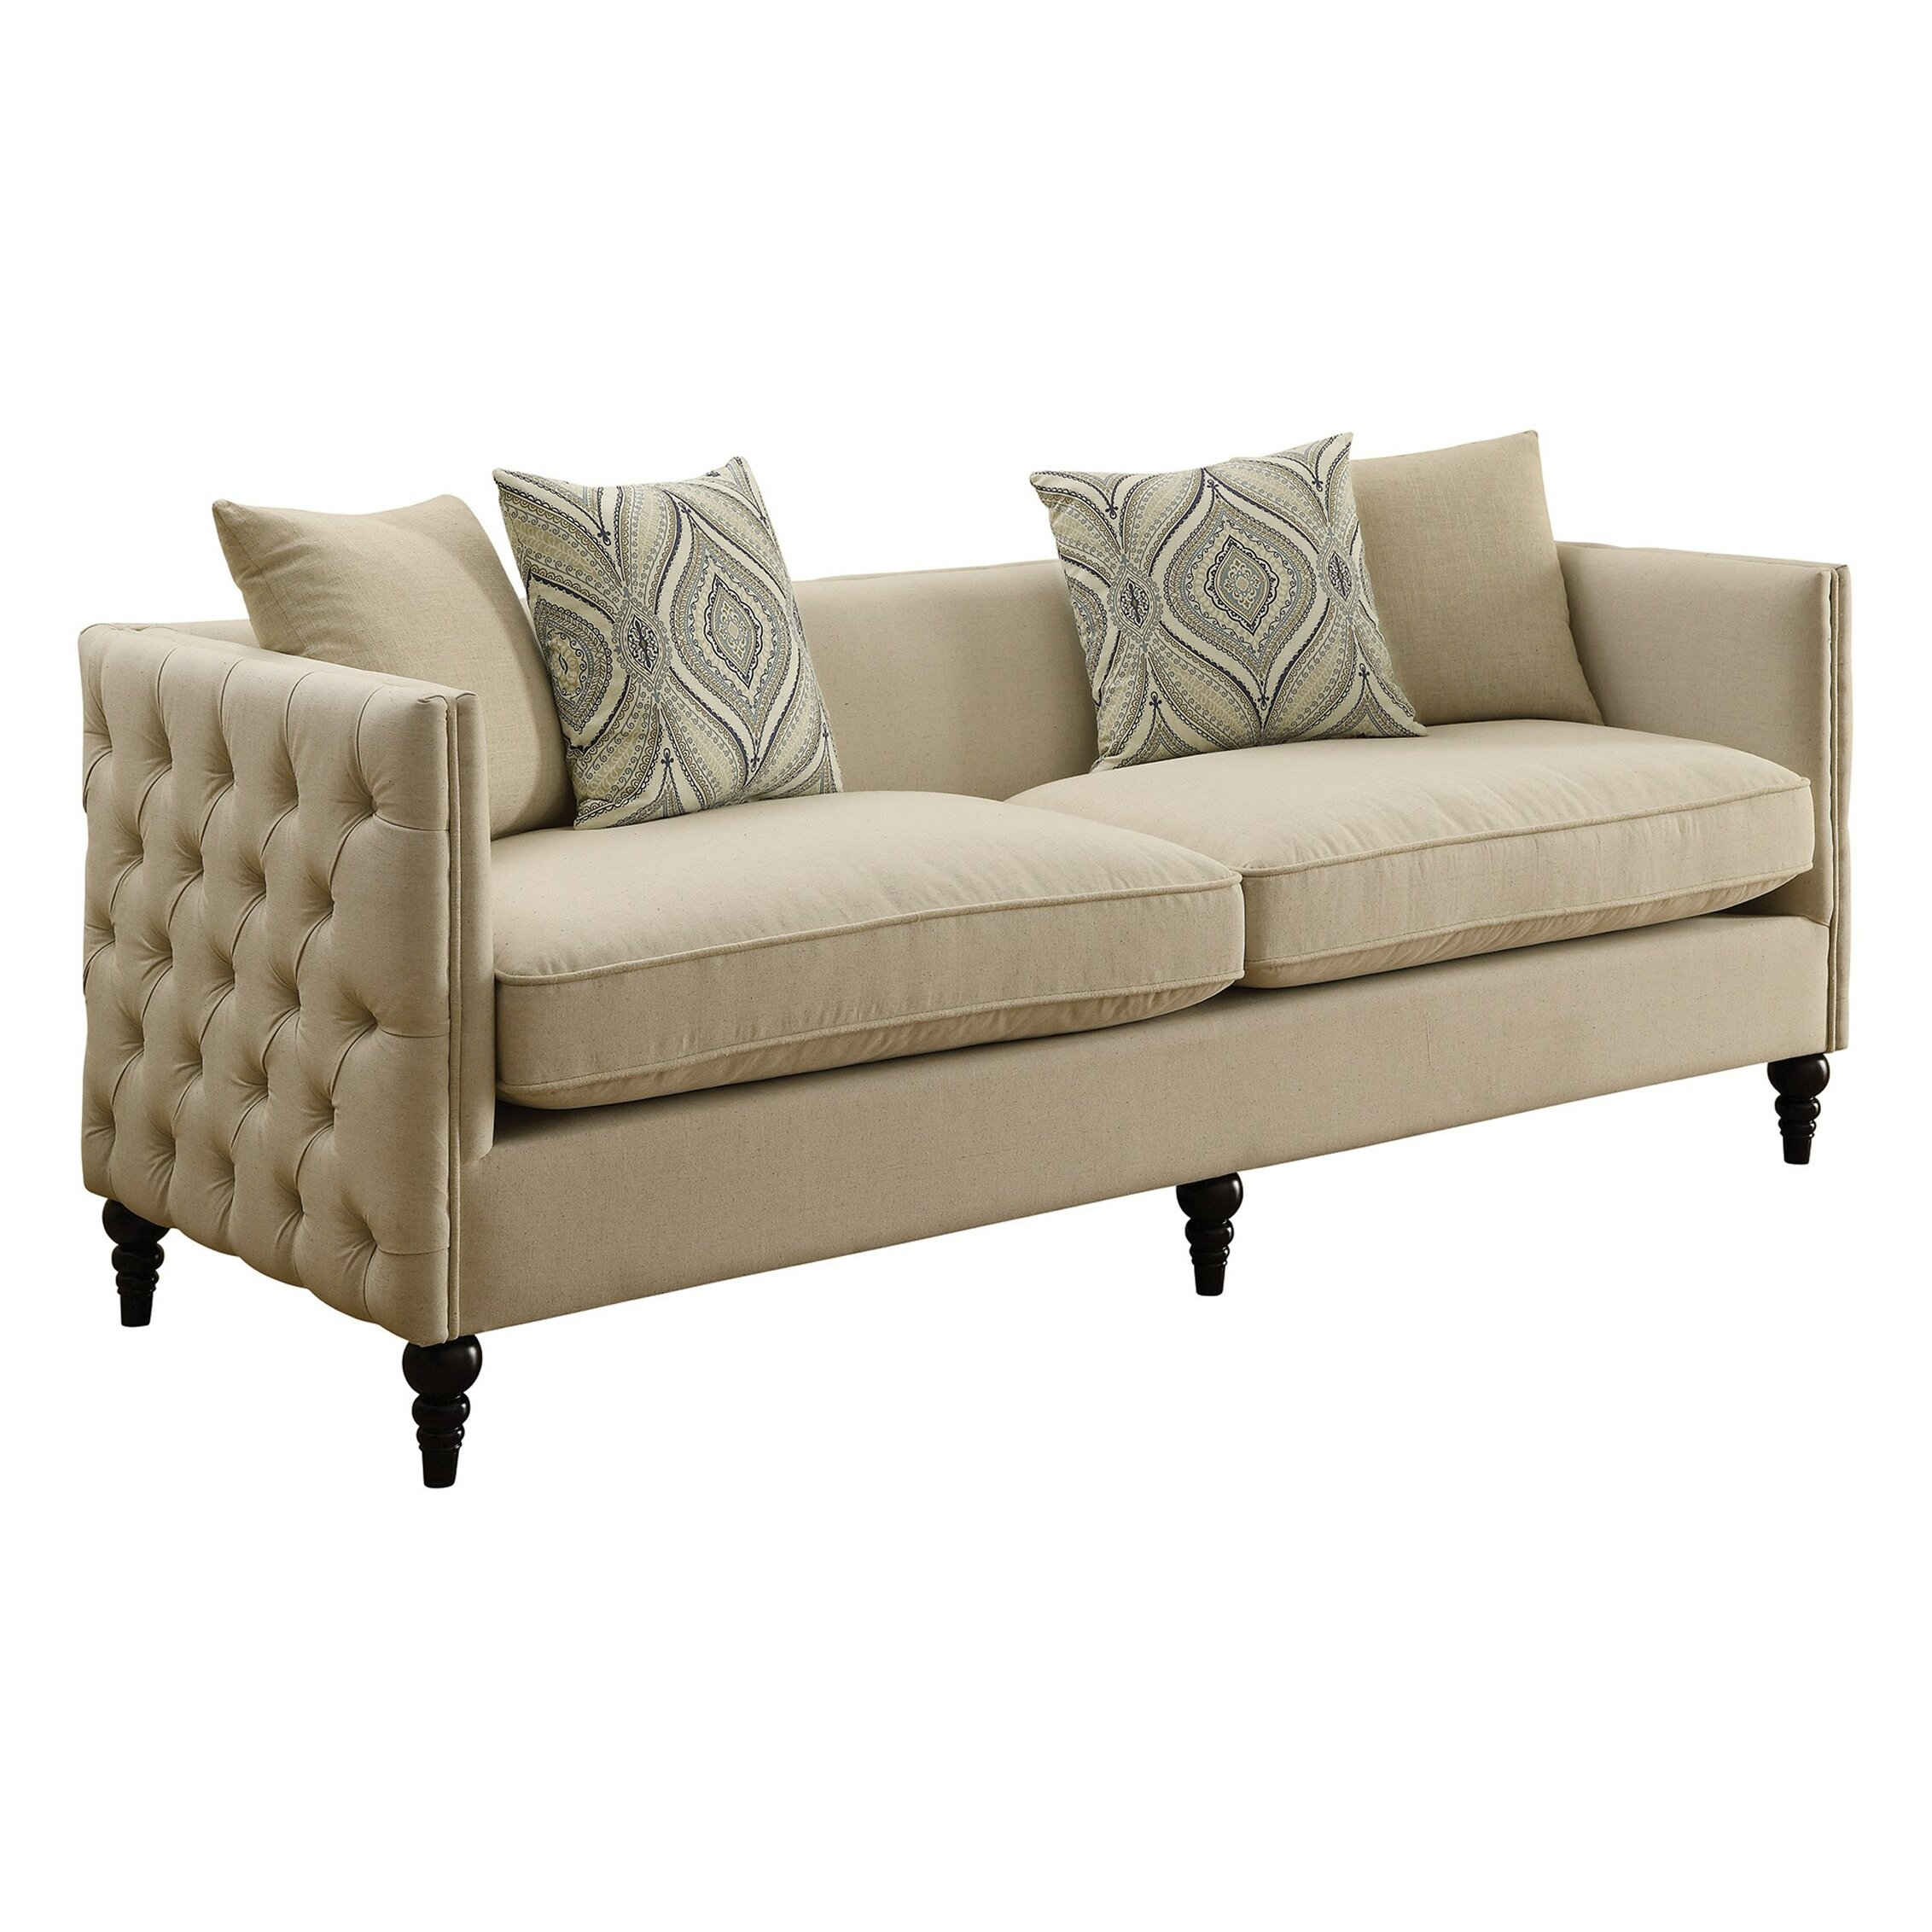 Infini furnishings new rochelle sofa and loveseat set for Divan furniture